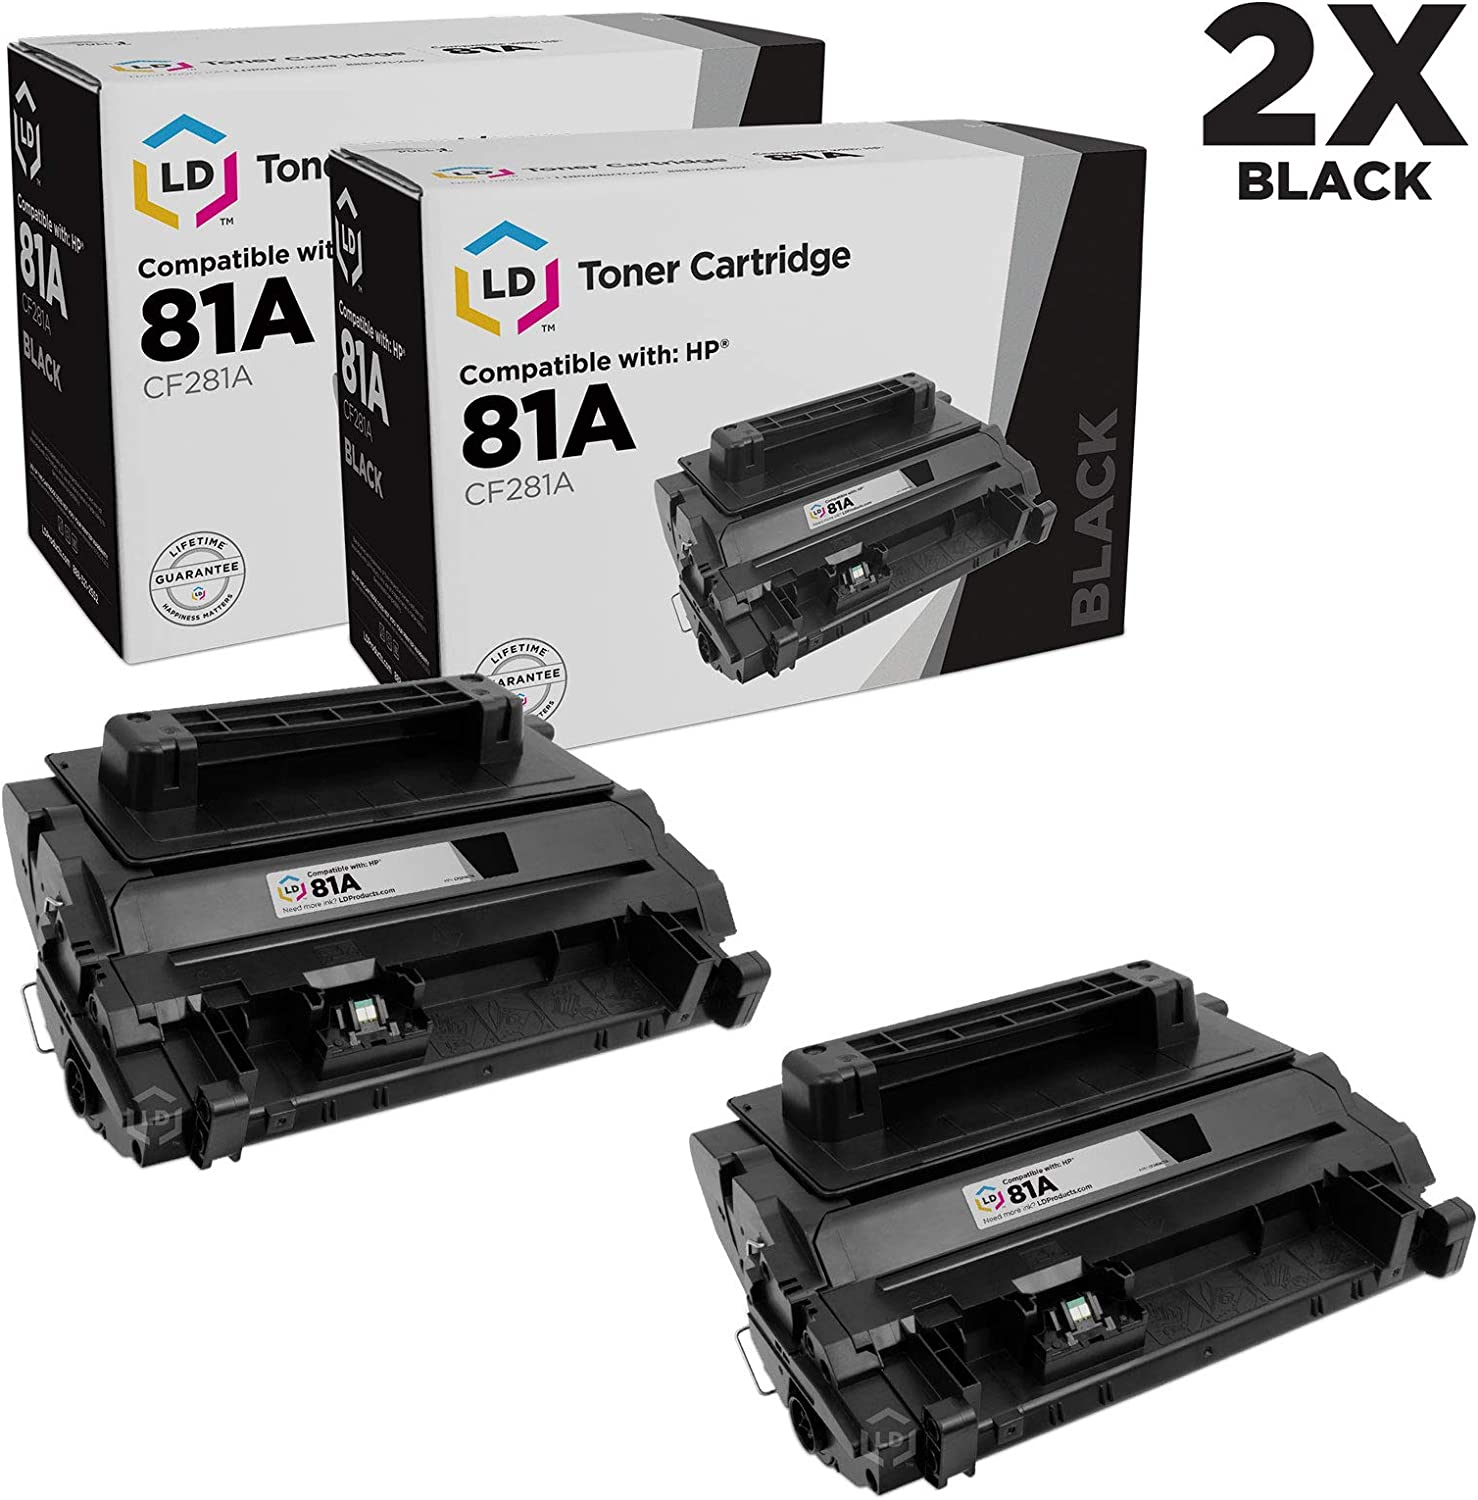 LD Compatible Toner Cartridge Replacement for HP 81A CF281A (Black, 2-Pack)